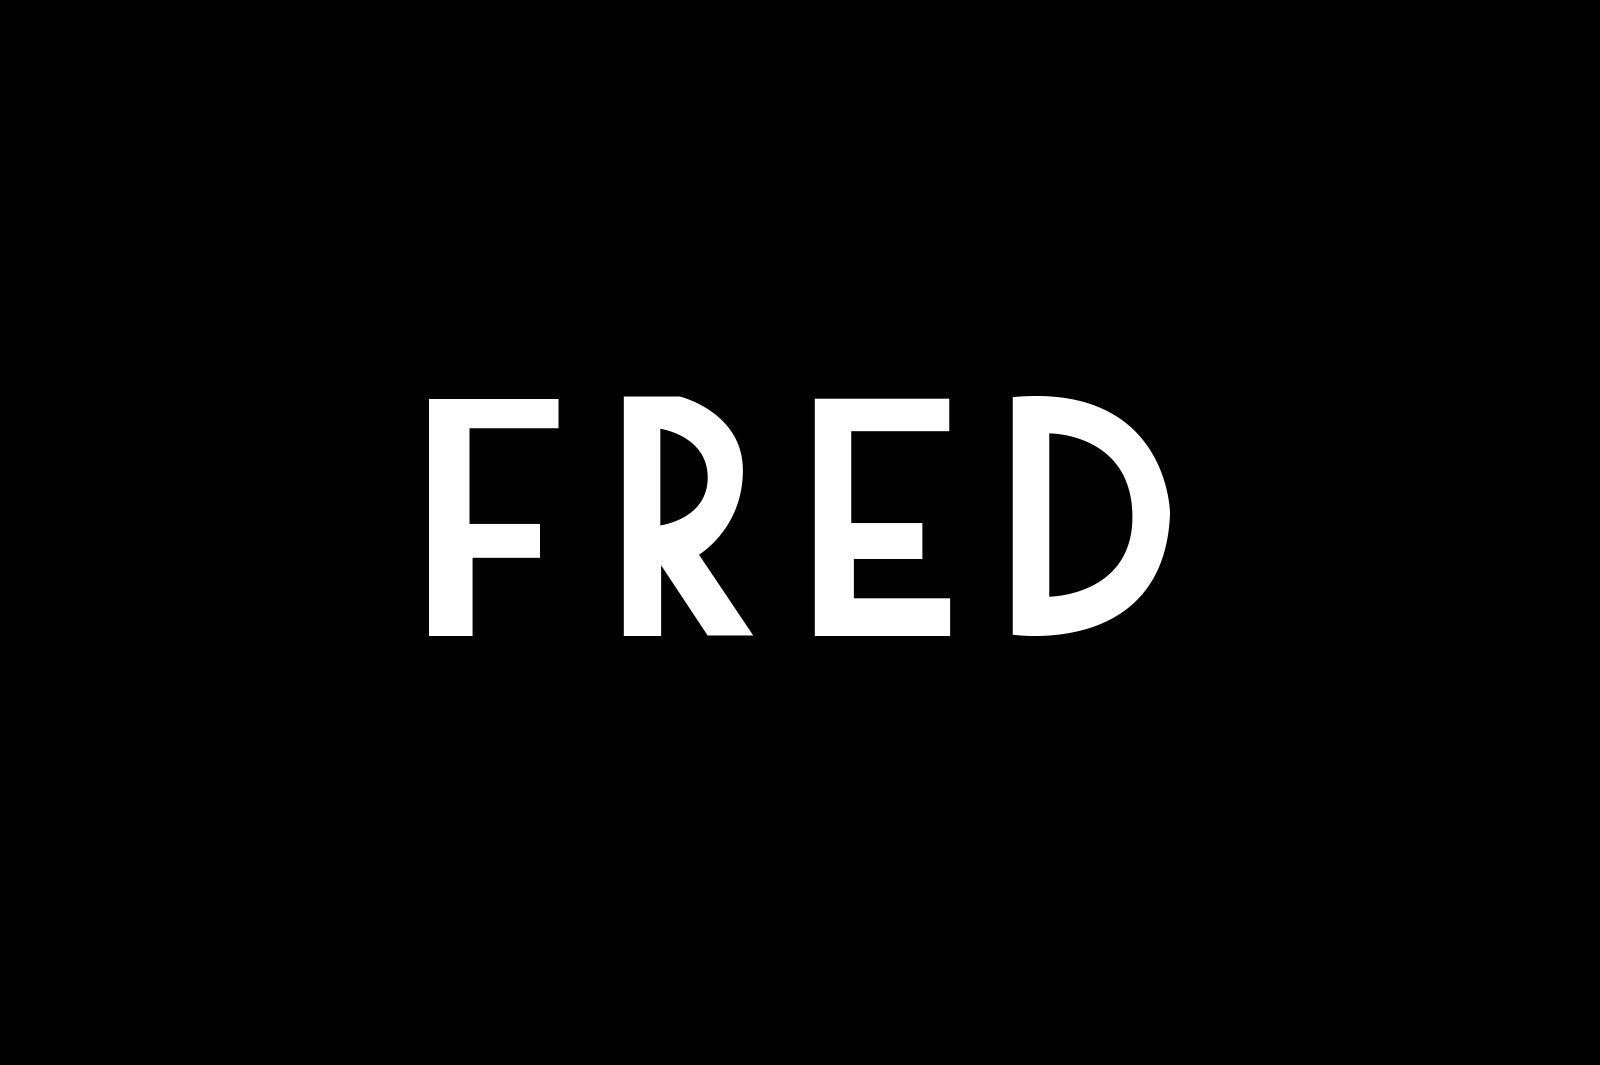 fred_01